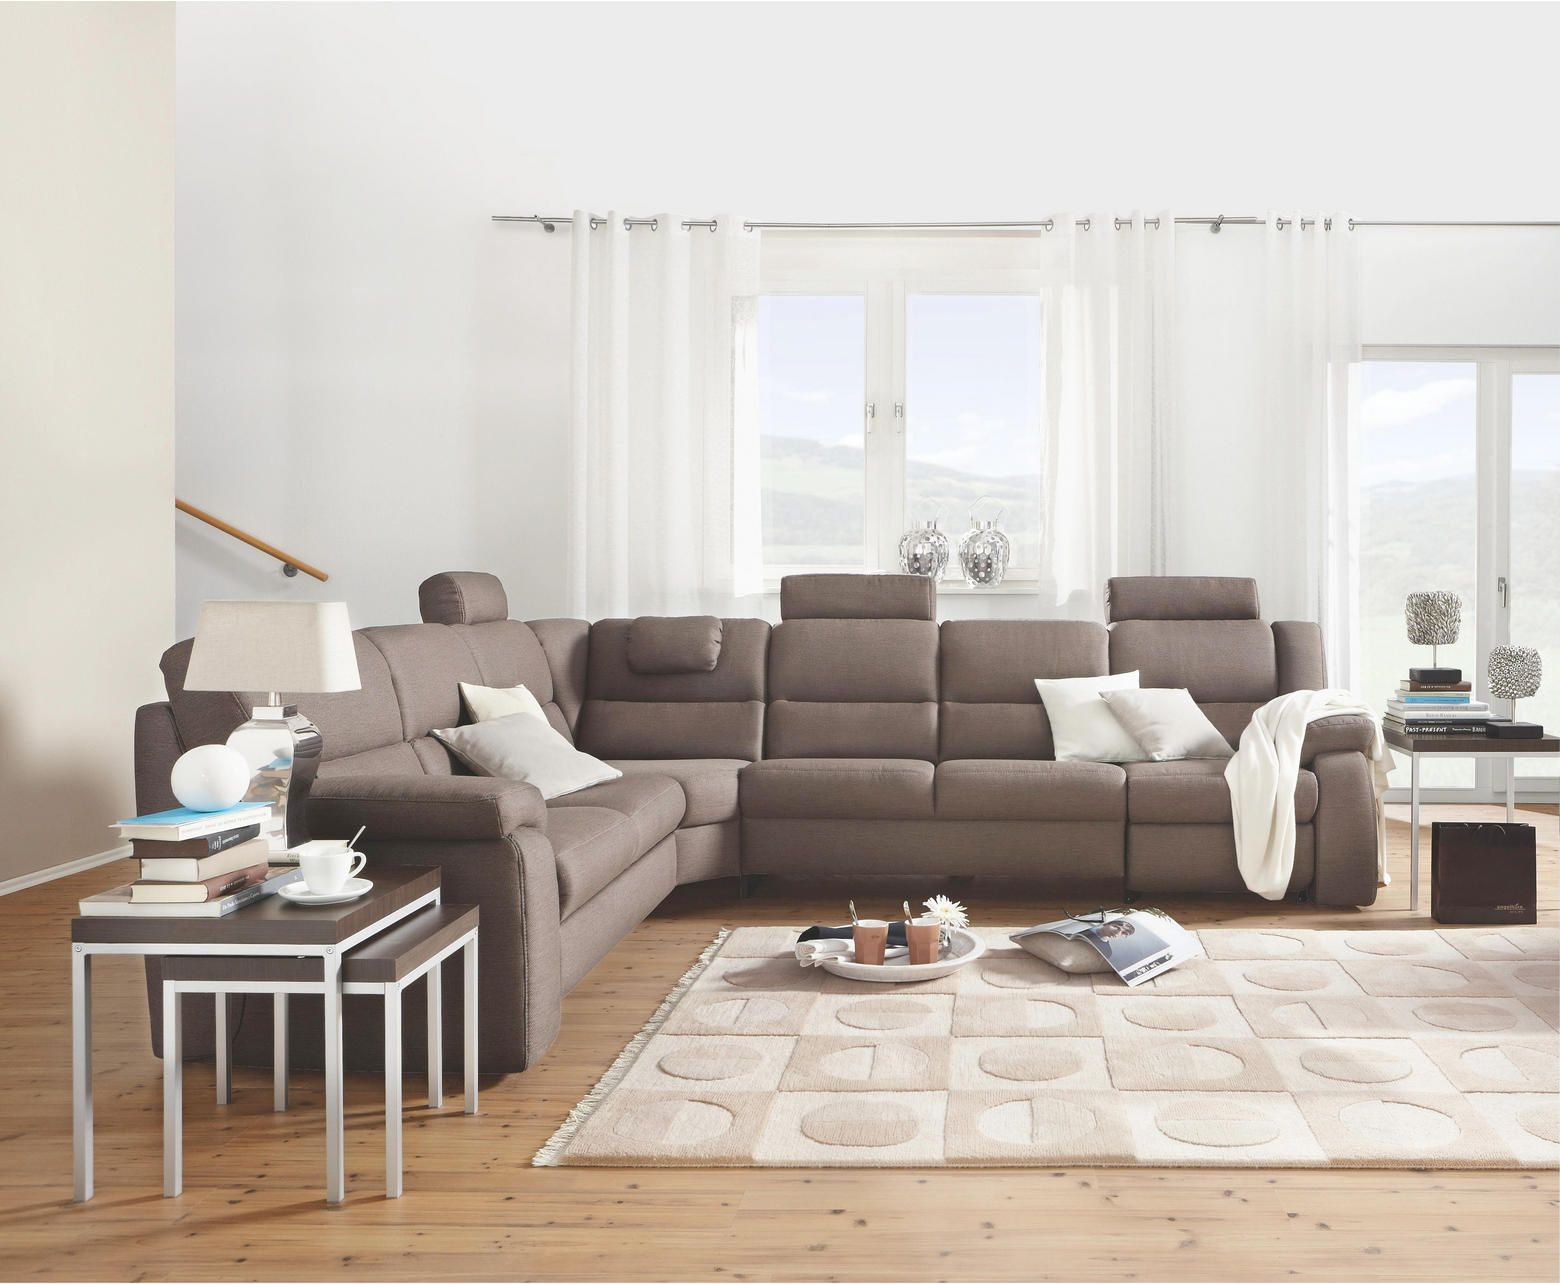 Bettsofa Timeo Wohnlandschaft In Grau Von Time Your Style Sofas Couches